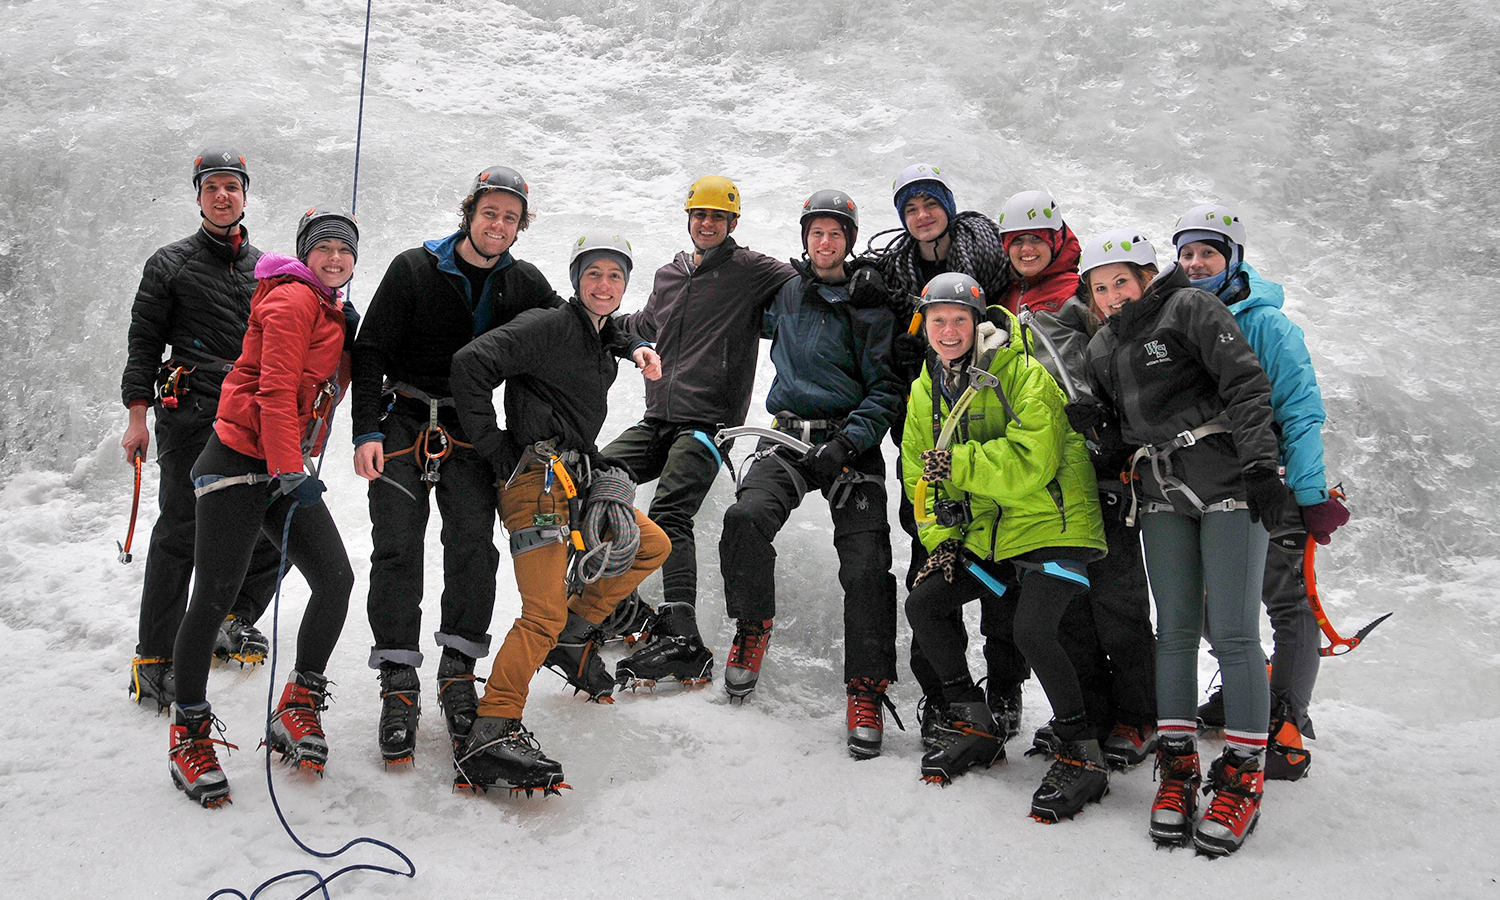 Members of the HWS Outdoor Recreation Program gather for a group photo during a guided ice climbing trip to the Adirondack Mountains.